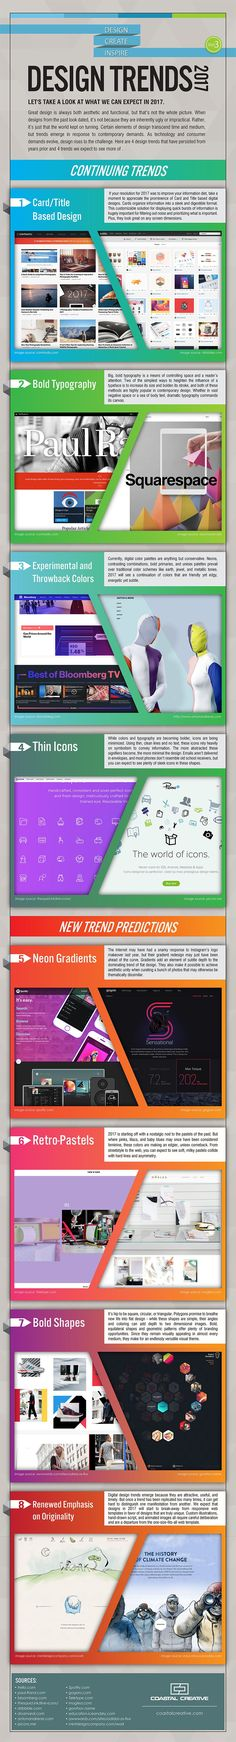 Design Trends 2017 - Infographic